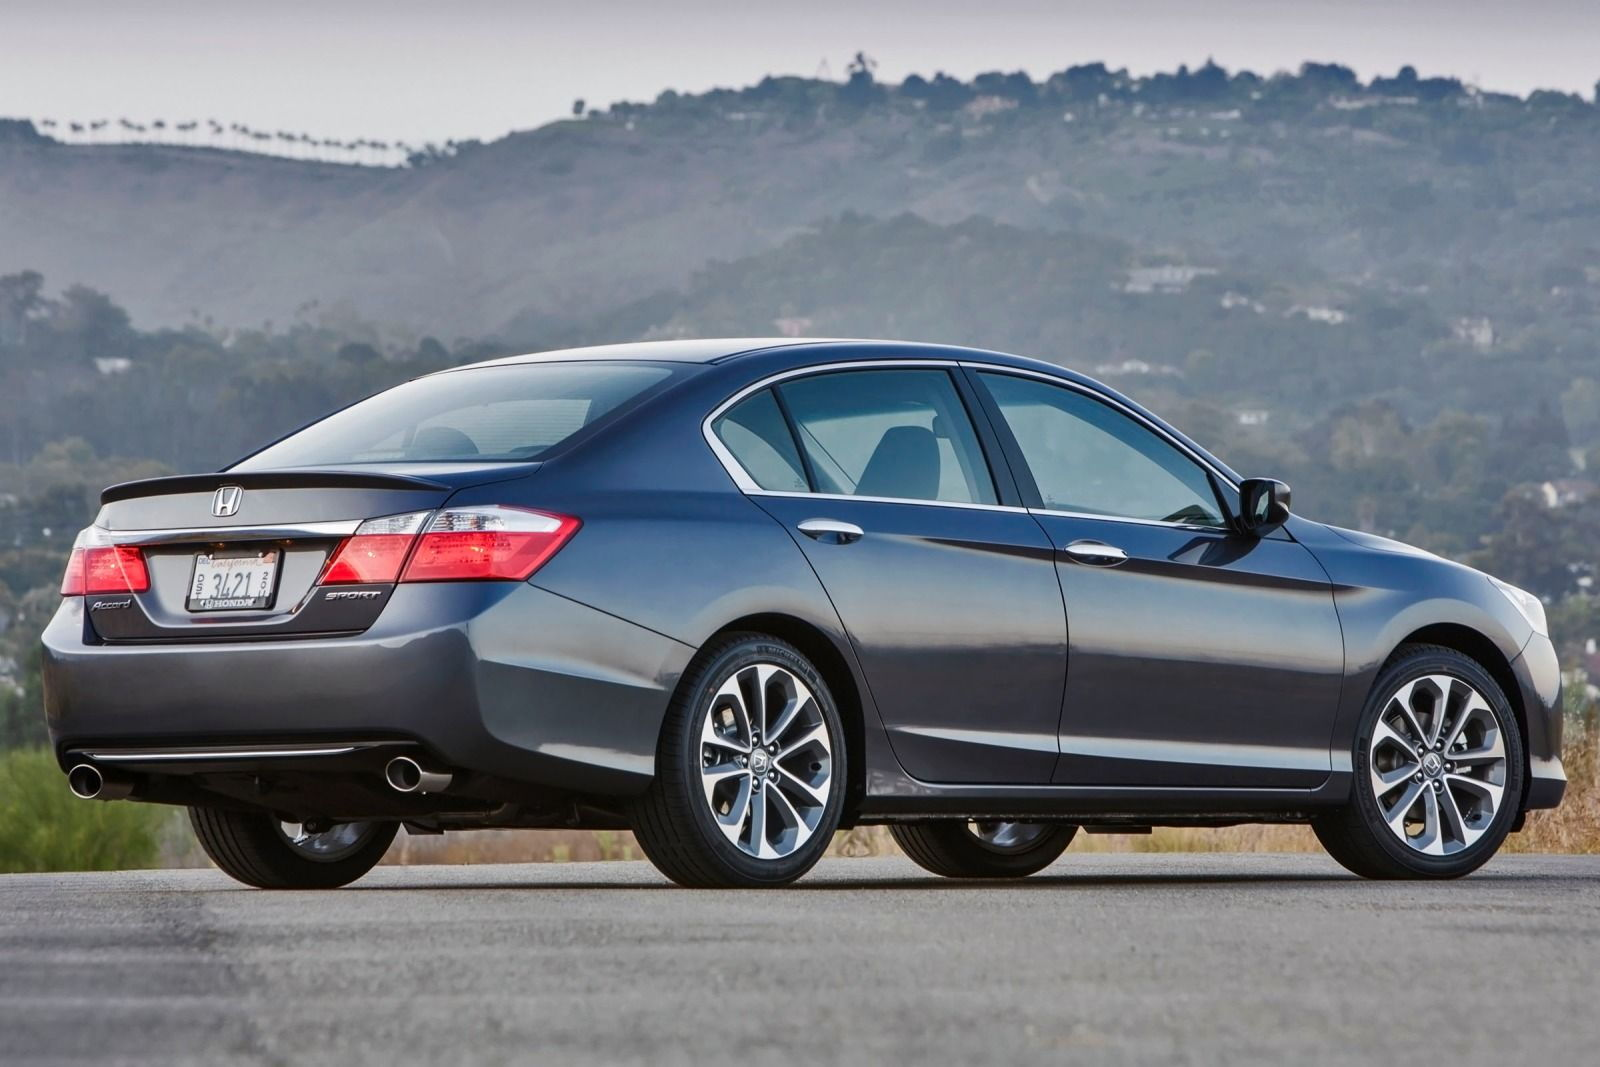 Most popular car colors 2015 - Honda Accord Rear